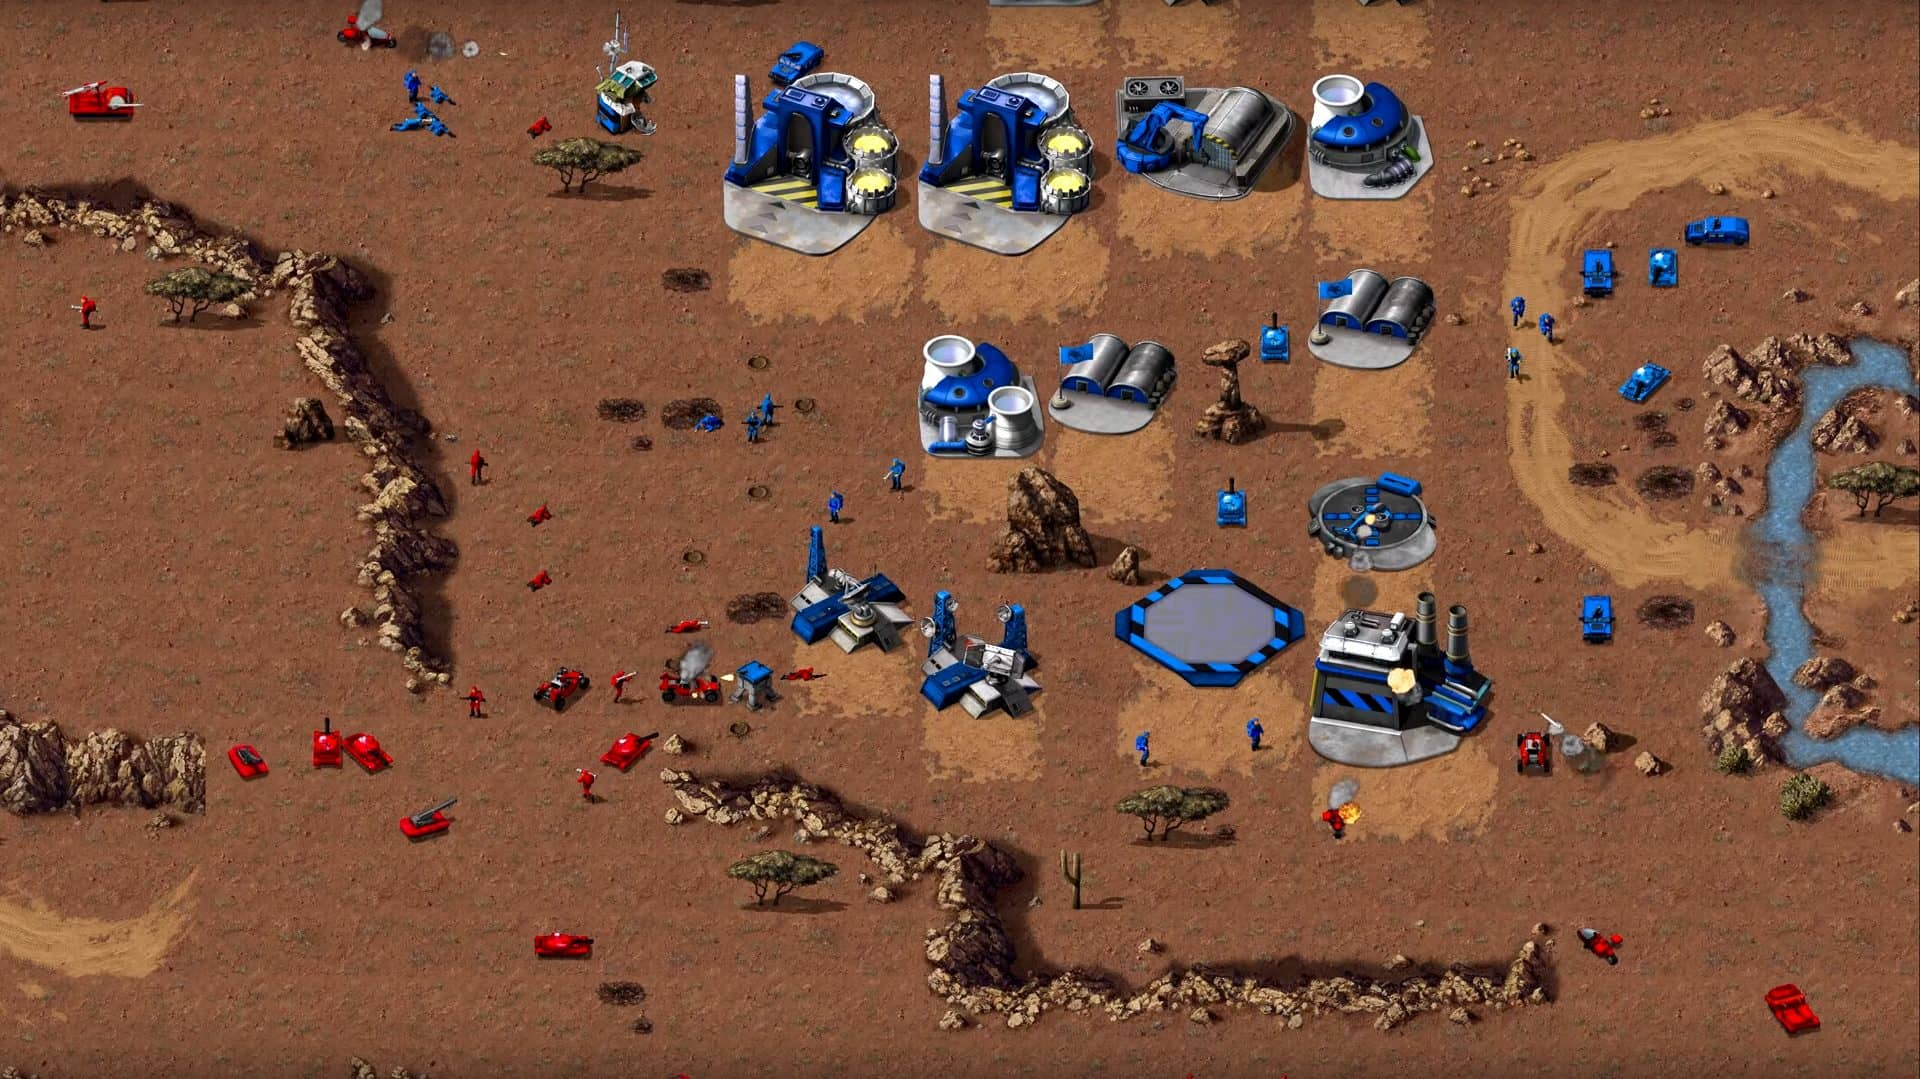 Command Conquer Remastered 4K obr10